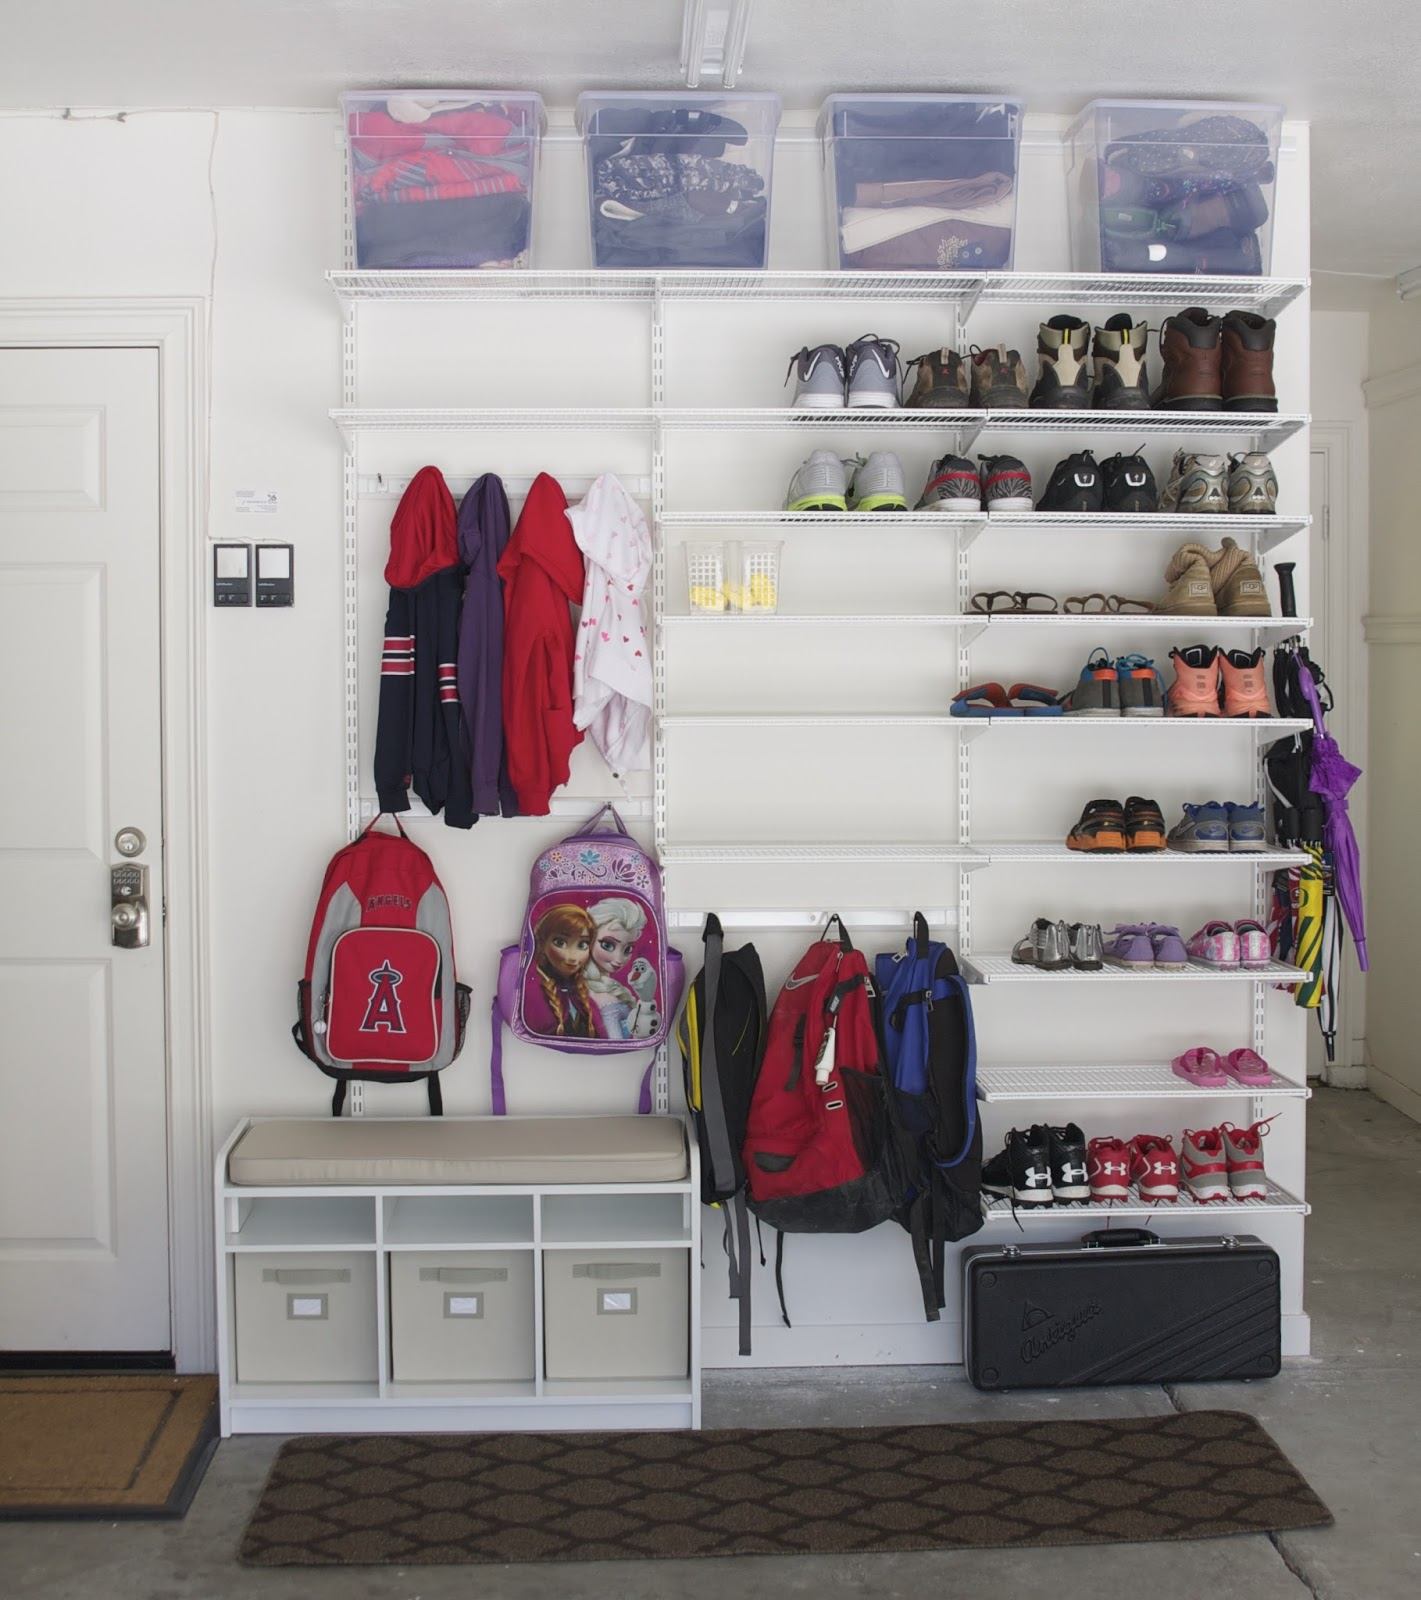 Garage Organization Shelving: Operation: Organization Sam From Simply Organized Garage